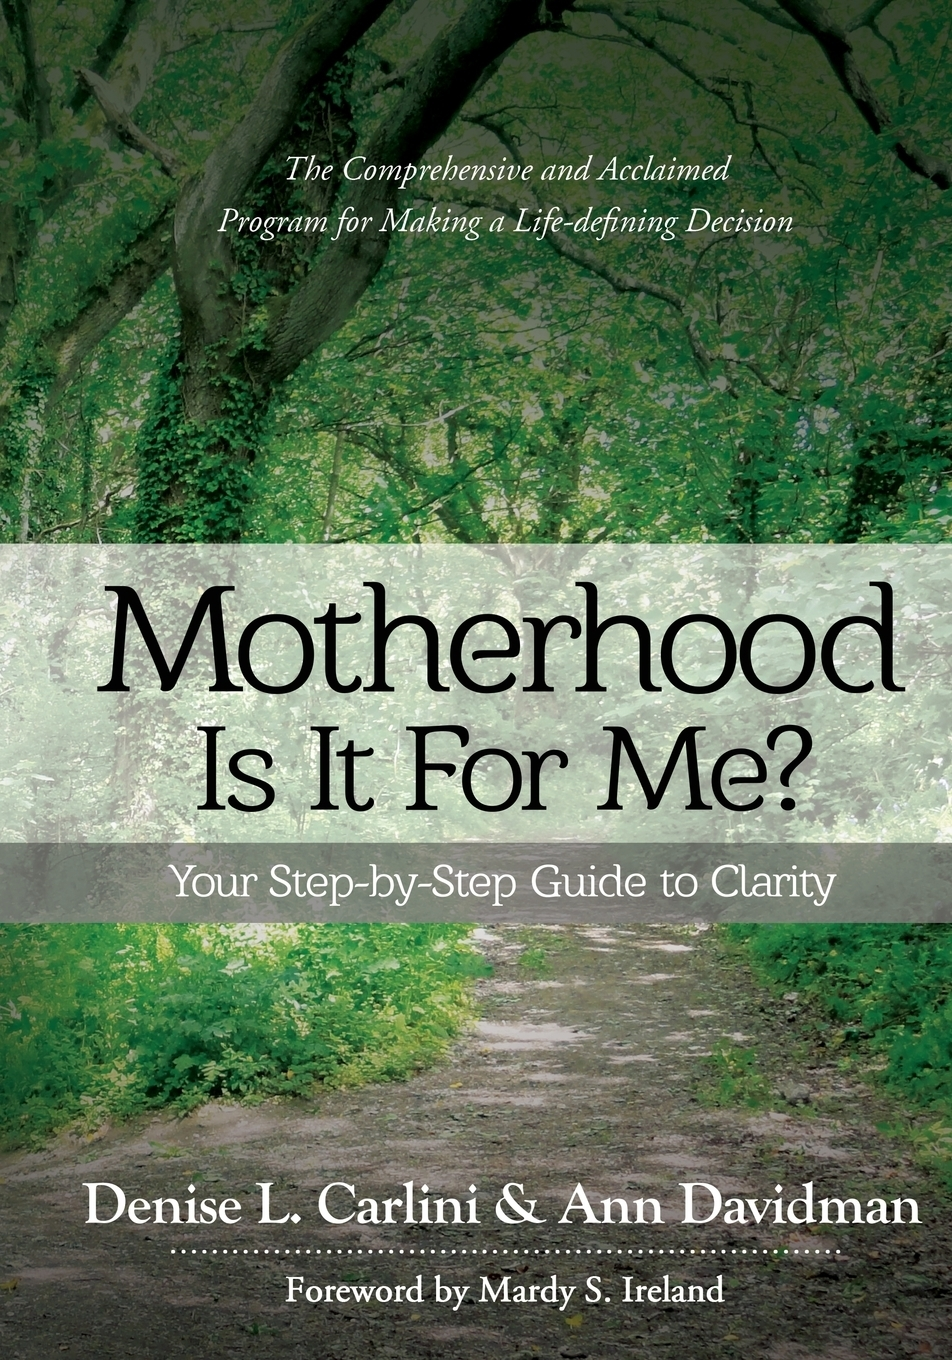 Denise L Carlini, Ann Davidman MOTHERHOOD - IS IT FOR ME?. Your Step-by-Step Guide to Clarity